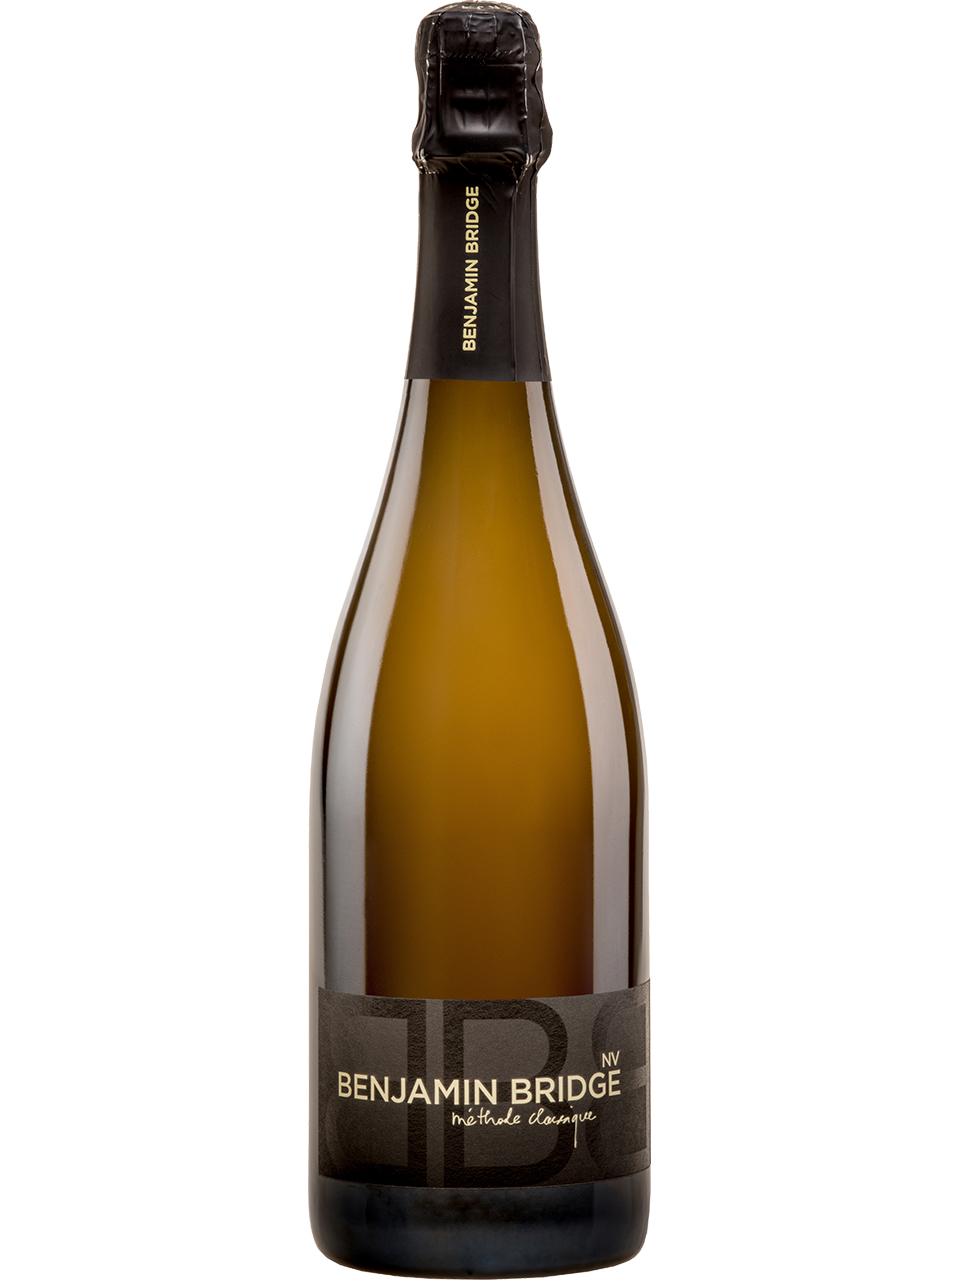 Benjamin Bridge NV Brut